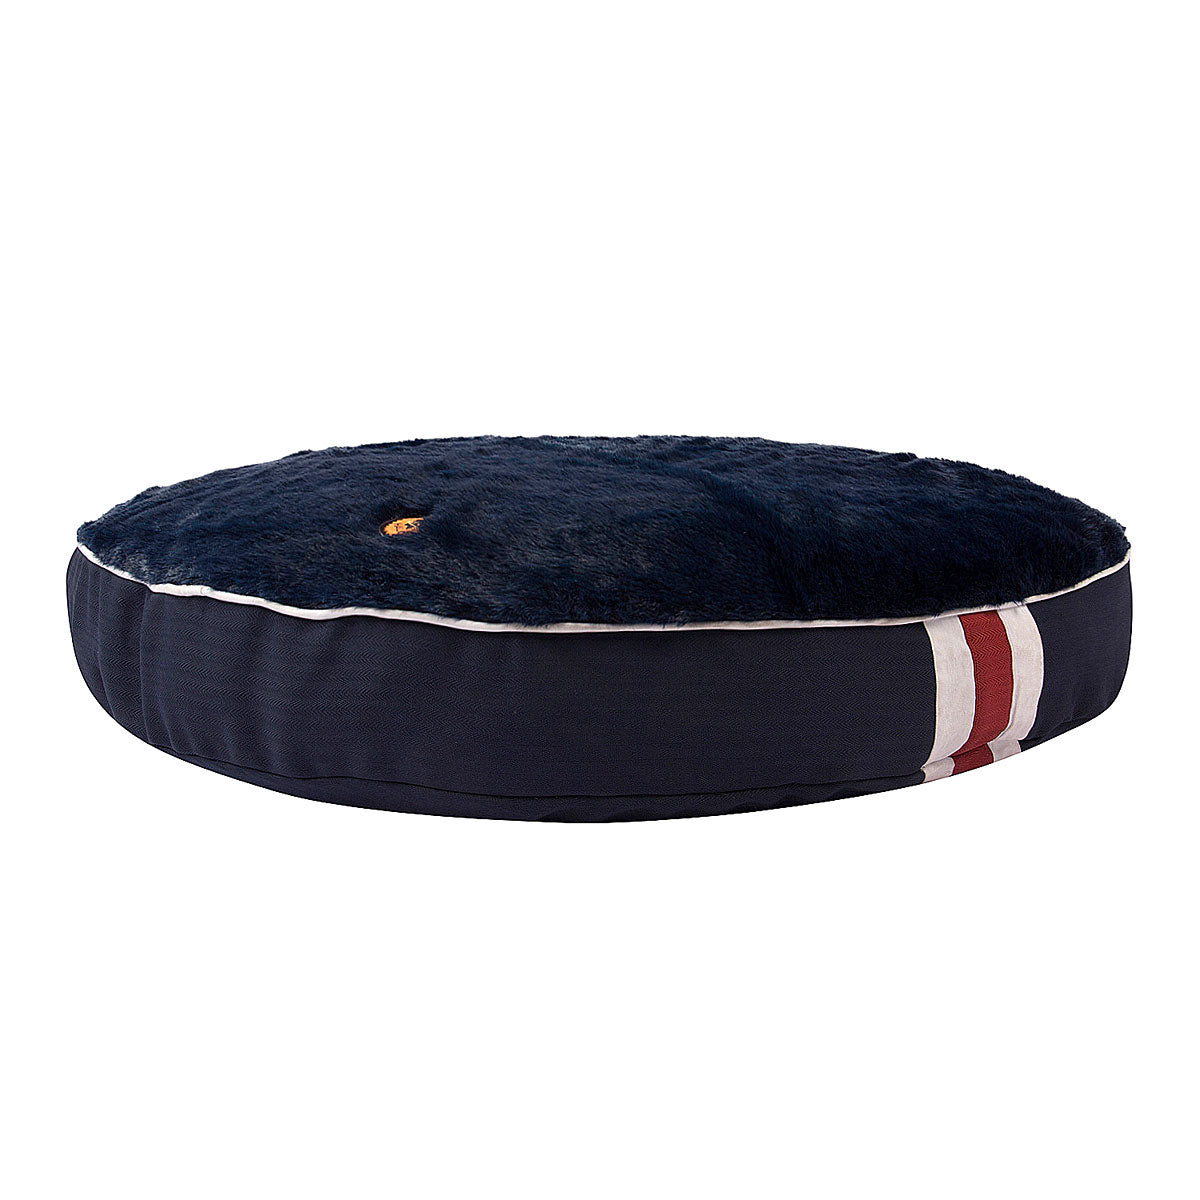 Halo Sam Round Dog Bed - Halo - Breeches.com